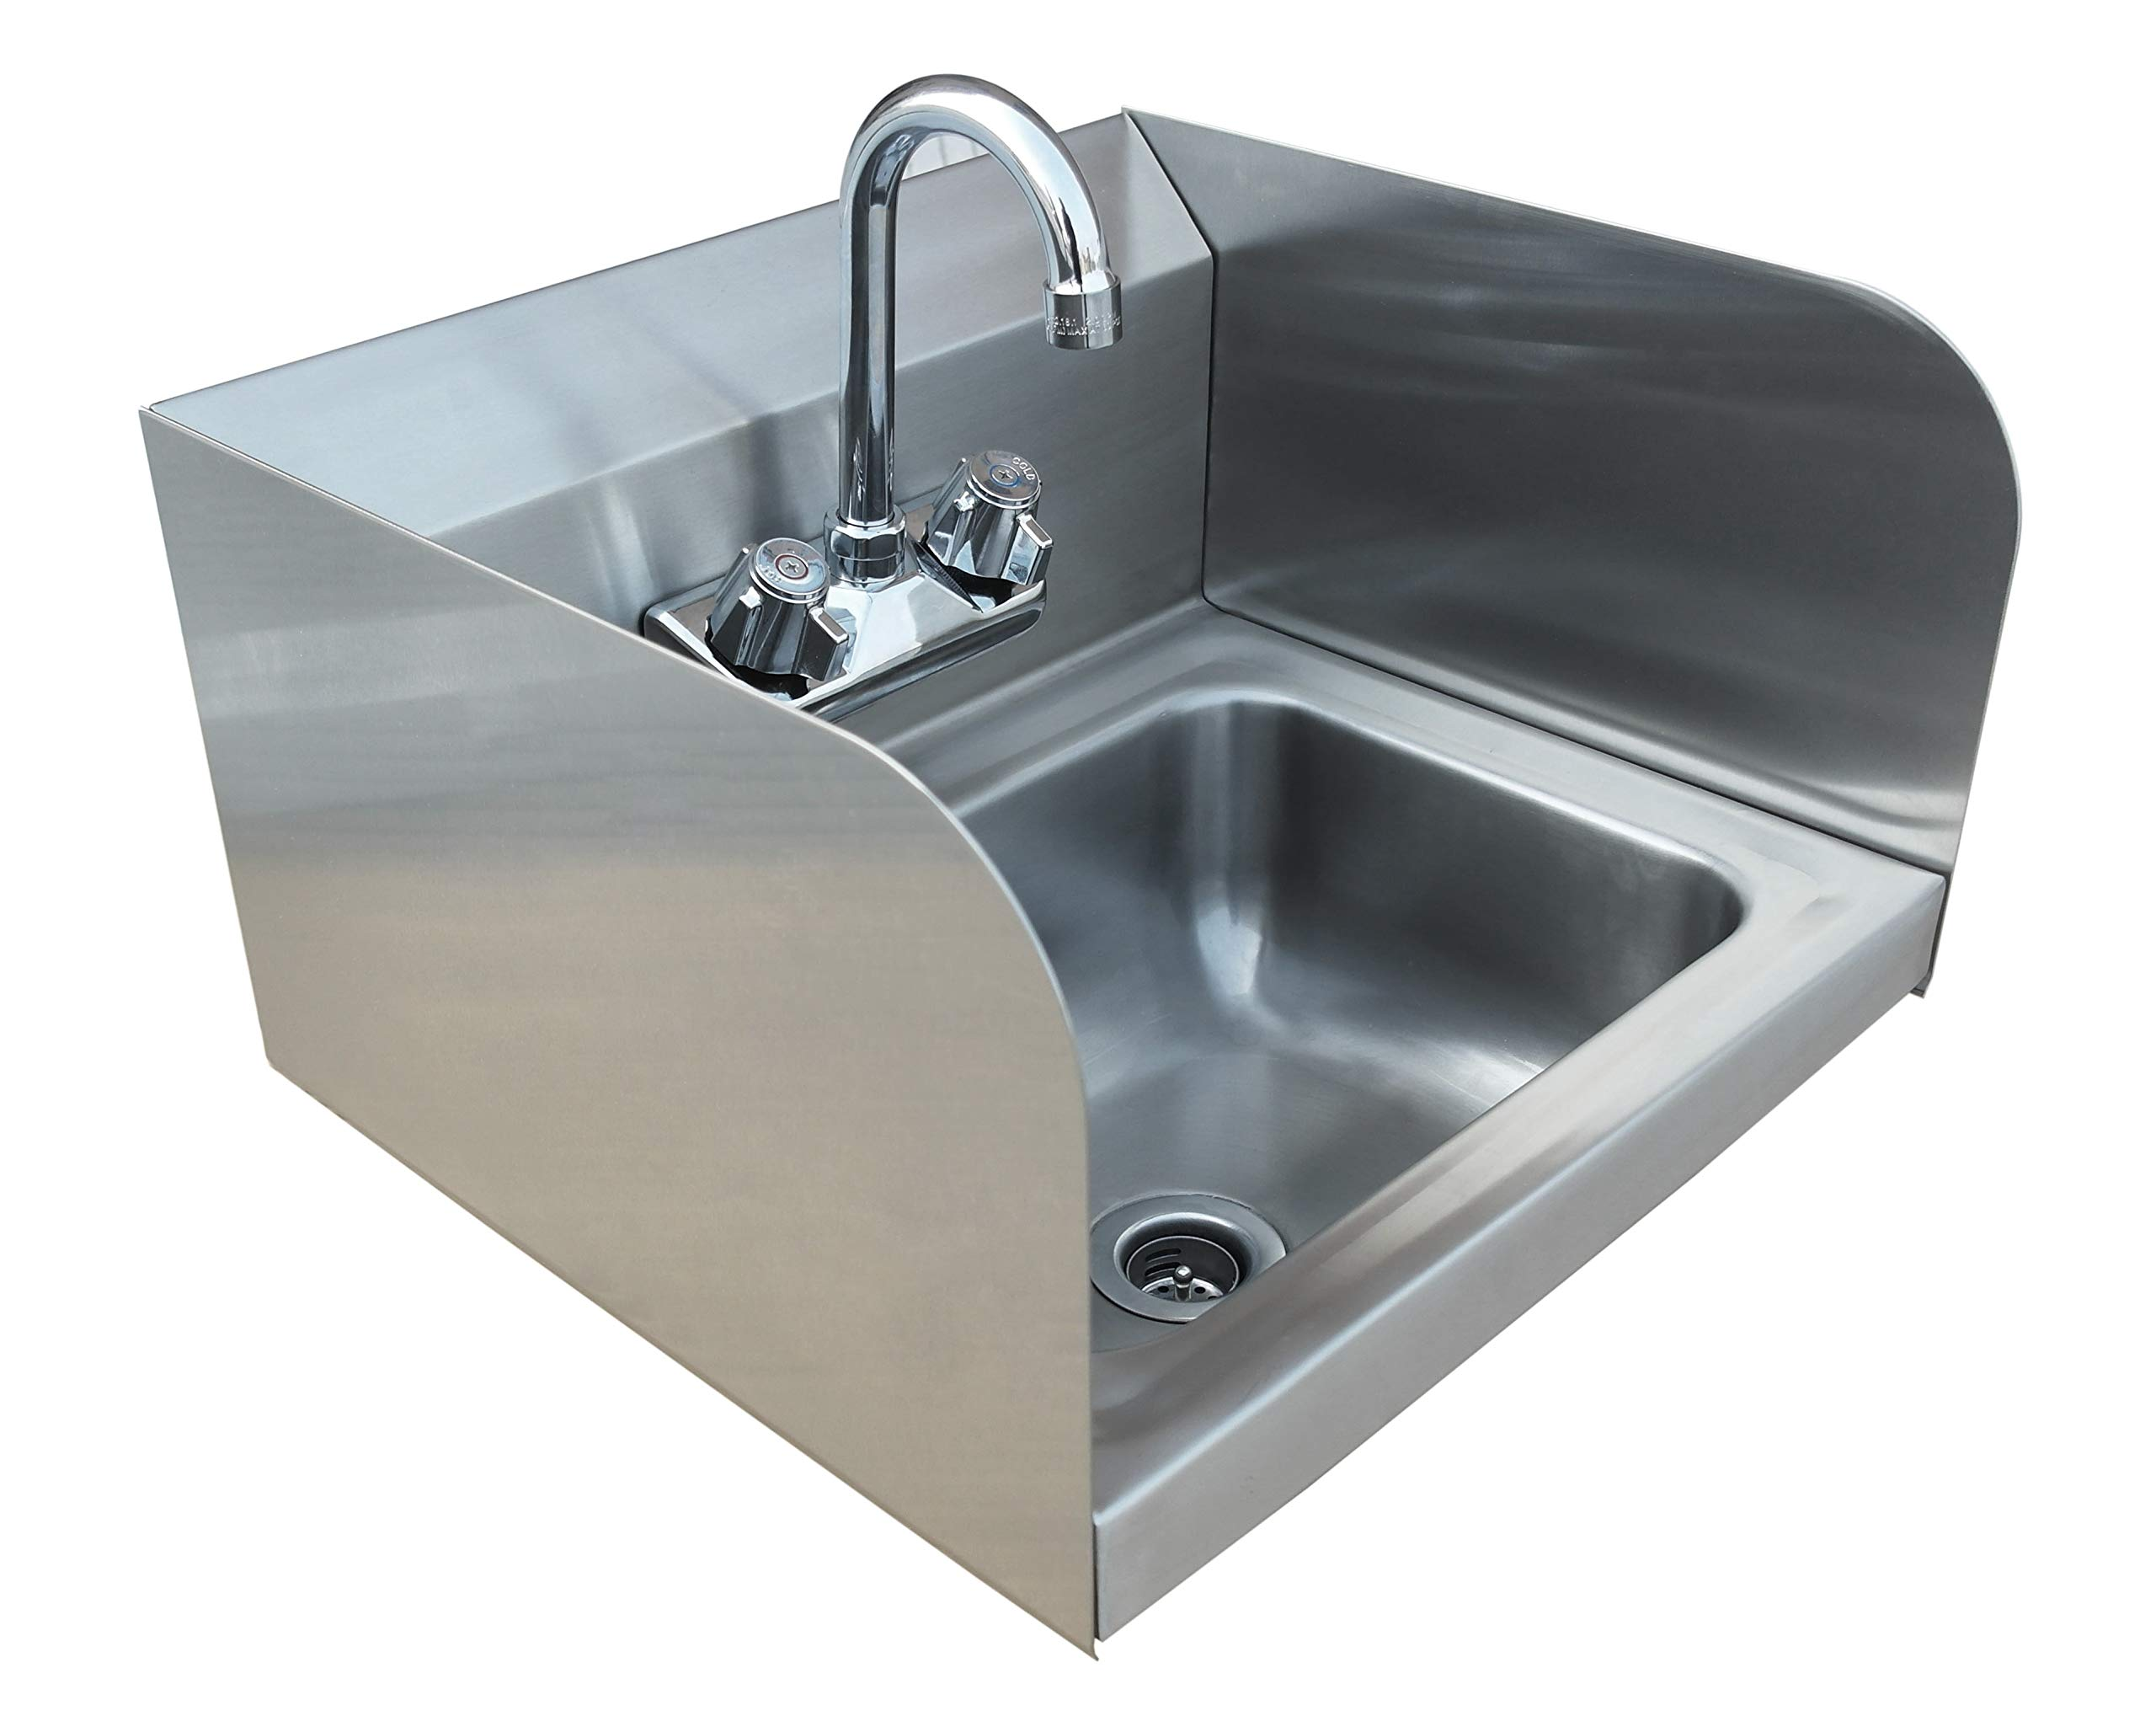 Stortec Ss1012bc Commercial Restaurant Kitchen Stainless Steel Wall Mount Hand Wash And Prep Sink With Splash Guards